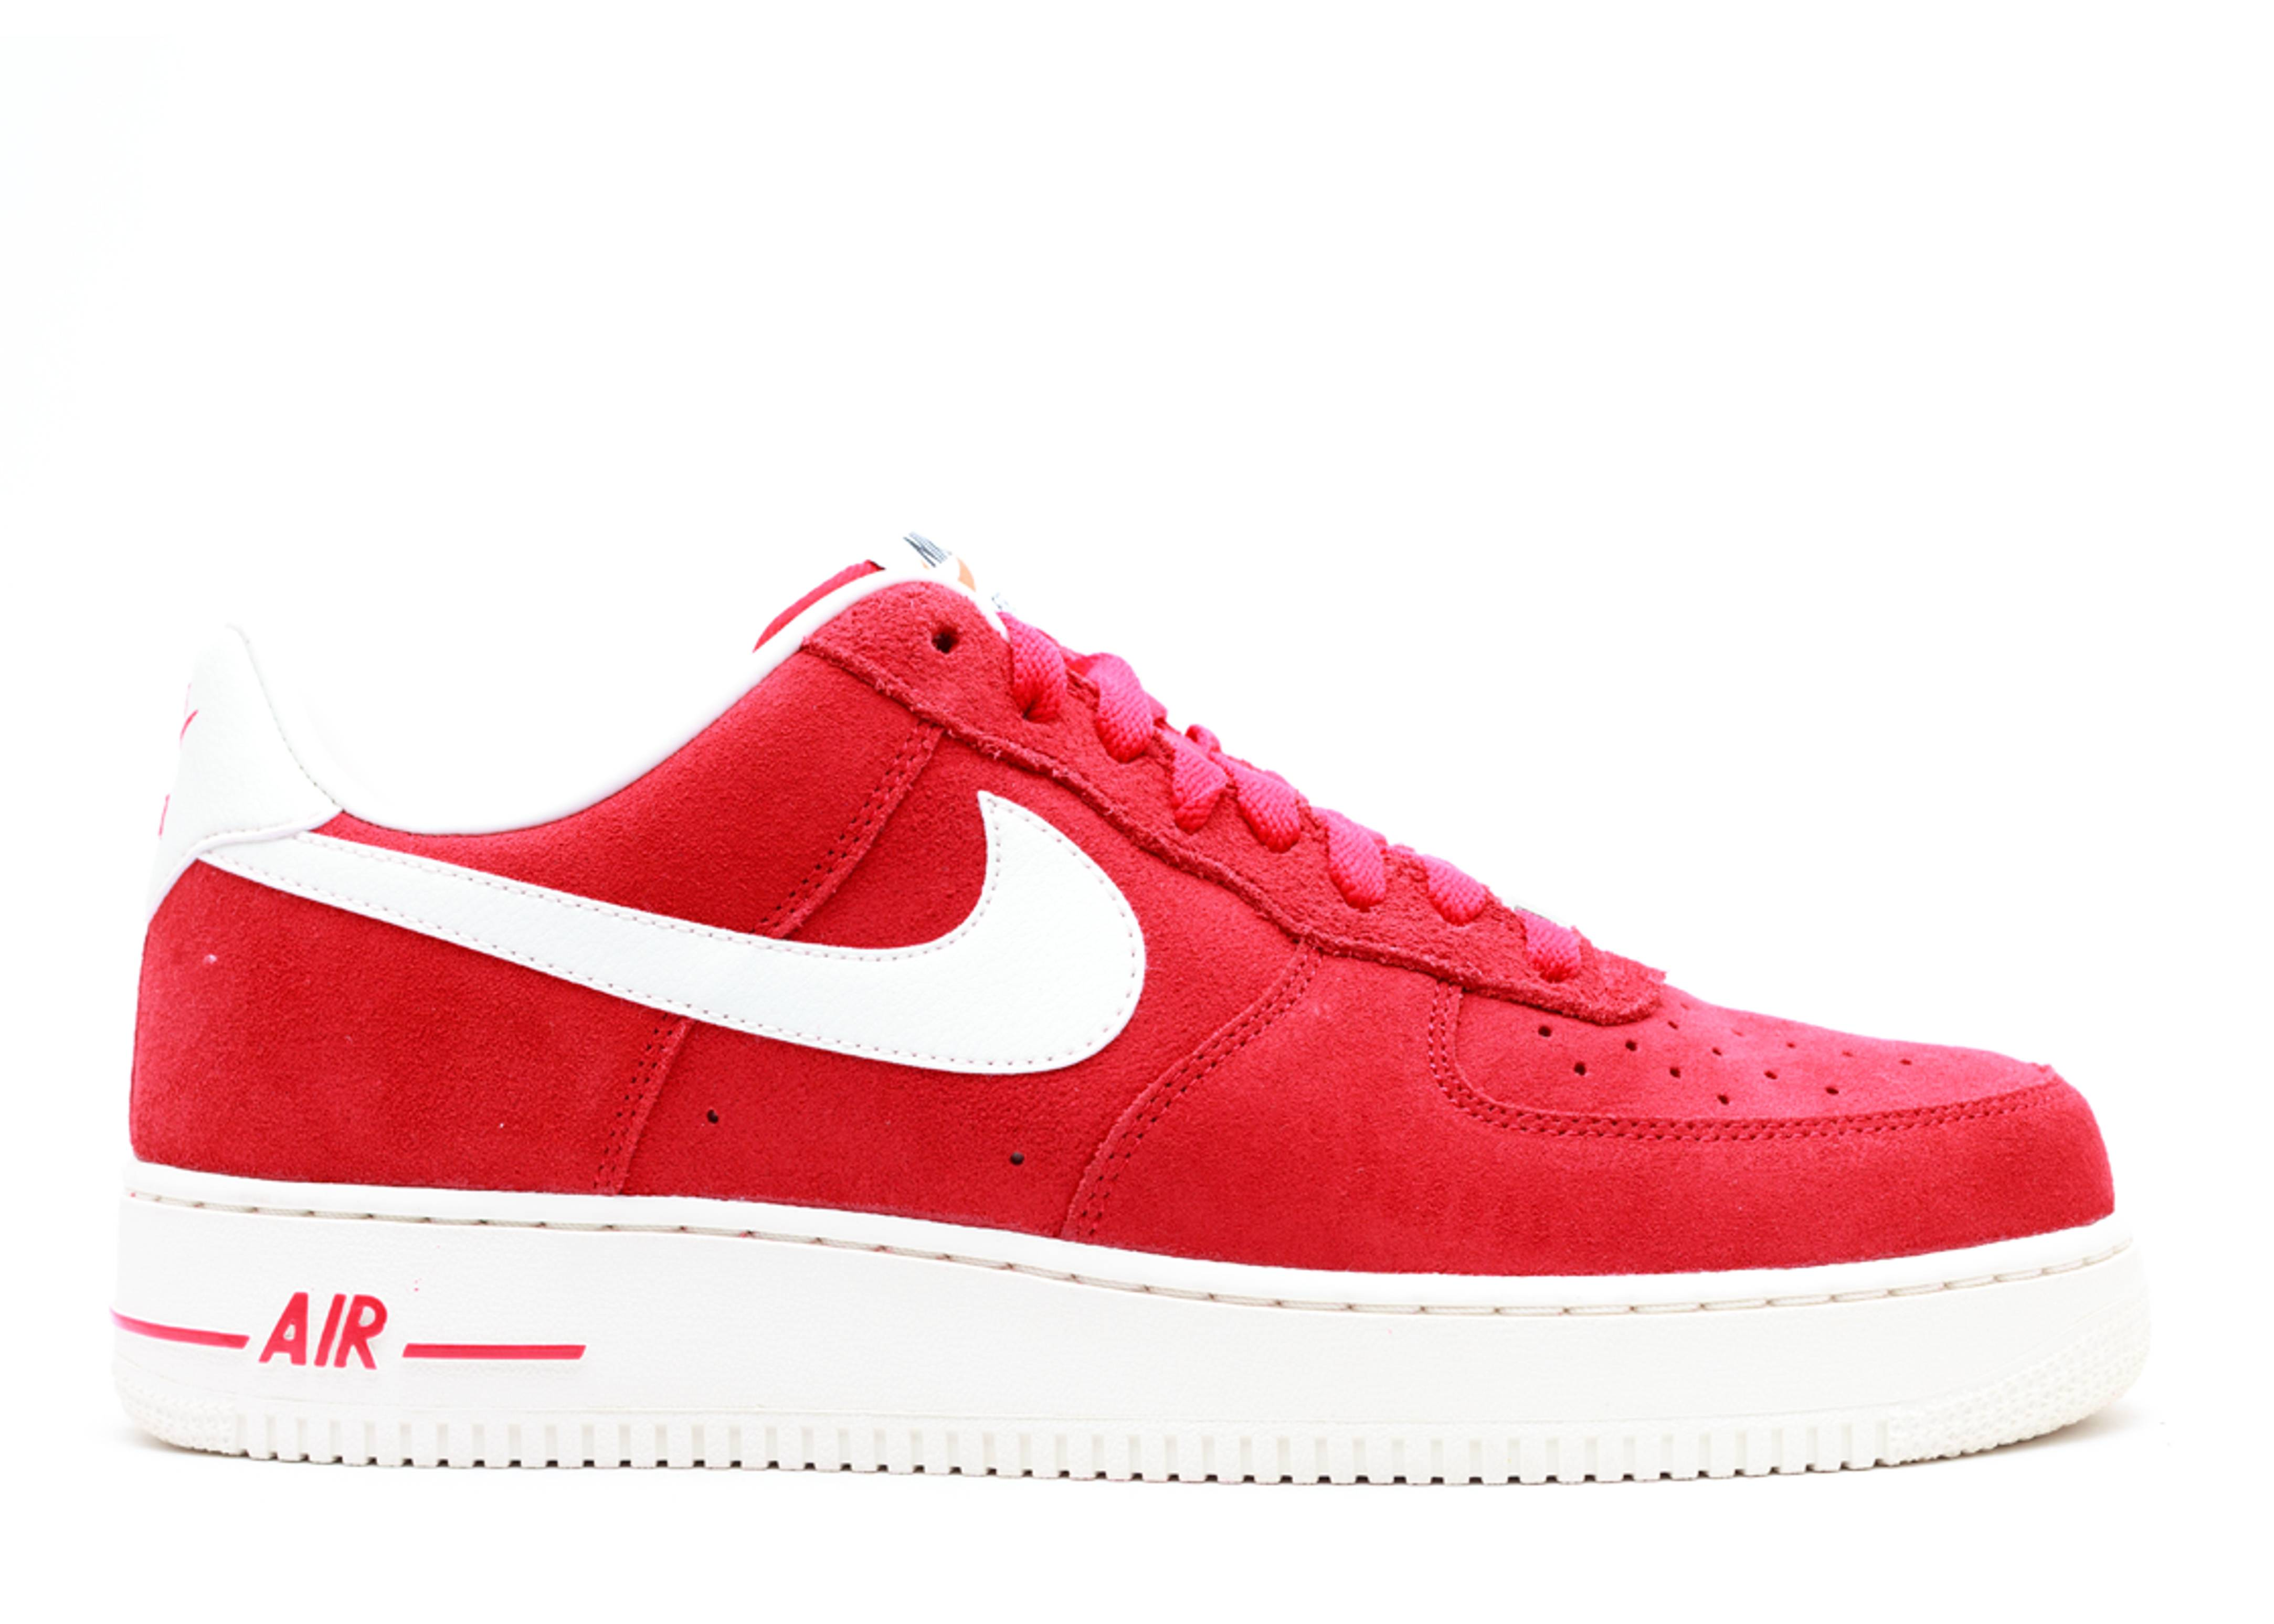 The 2018 version Best service Nike Air Force 1 (Blazer Pack